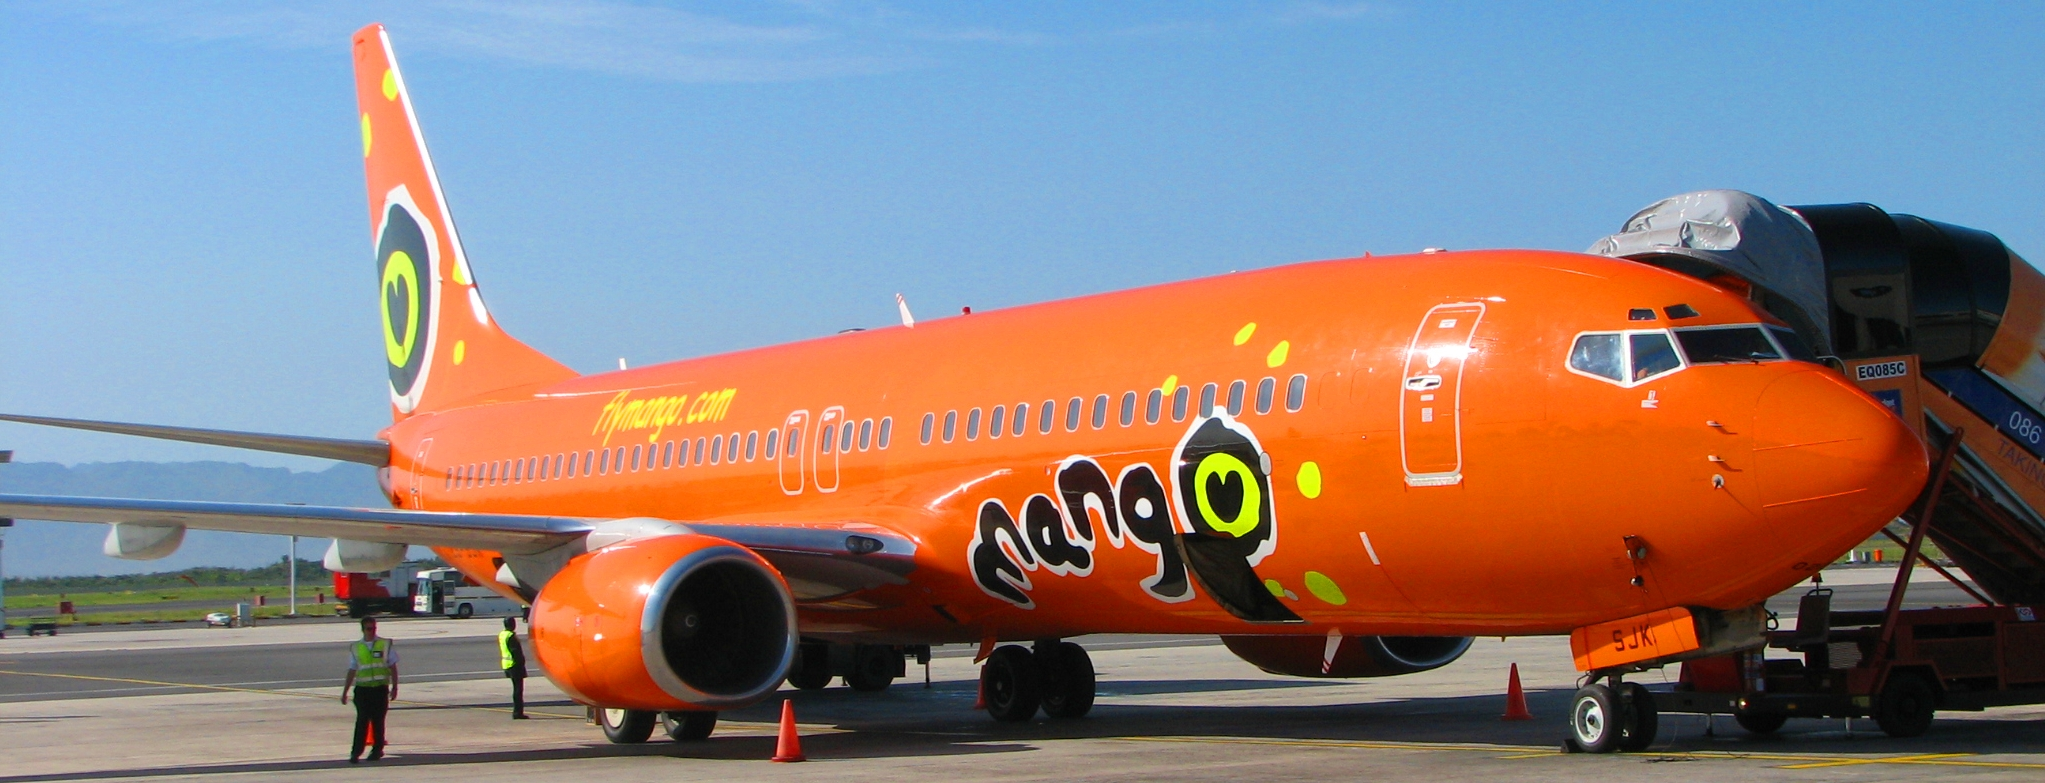 Star Alliance Invites Mango Airlines to join as part of Connected Partner Model